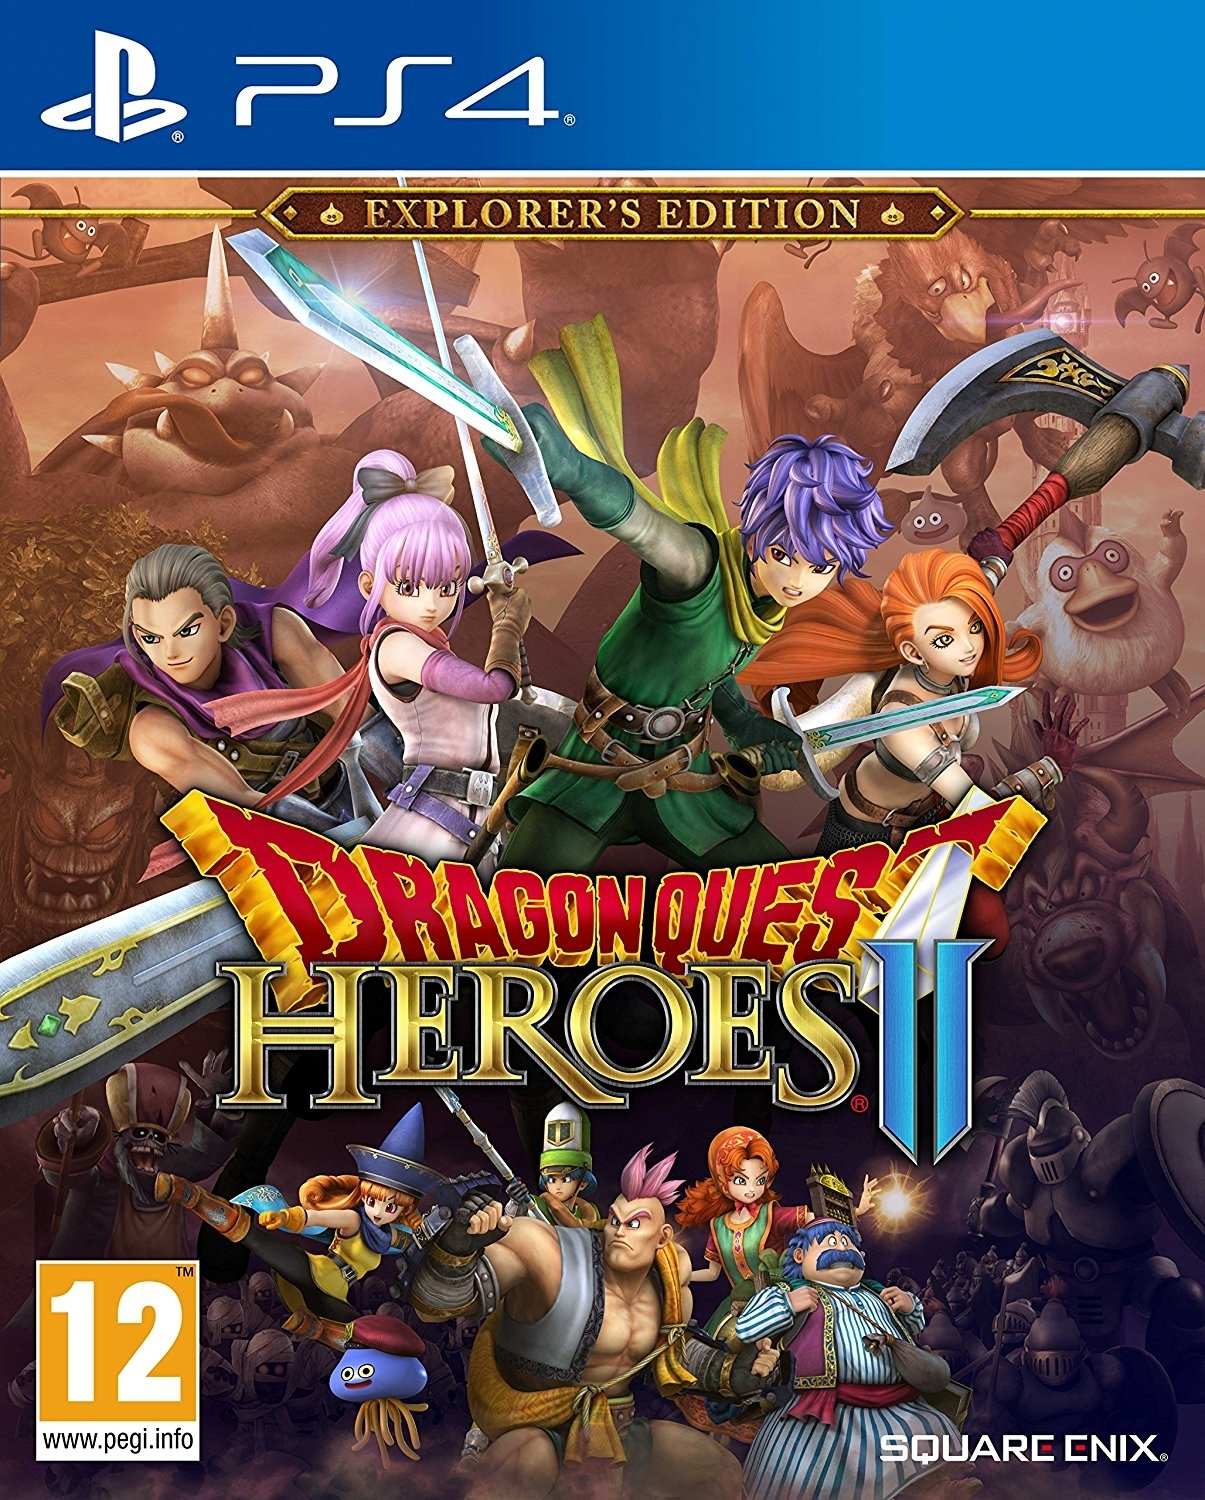 Dragon Quest Heroes II Explorers Edition (PS4)